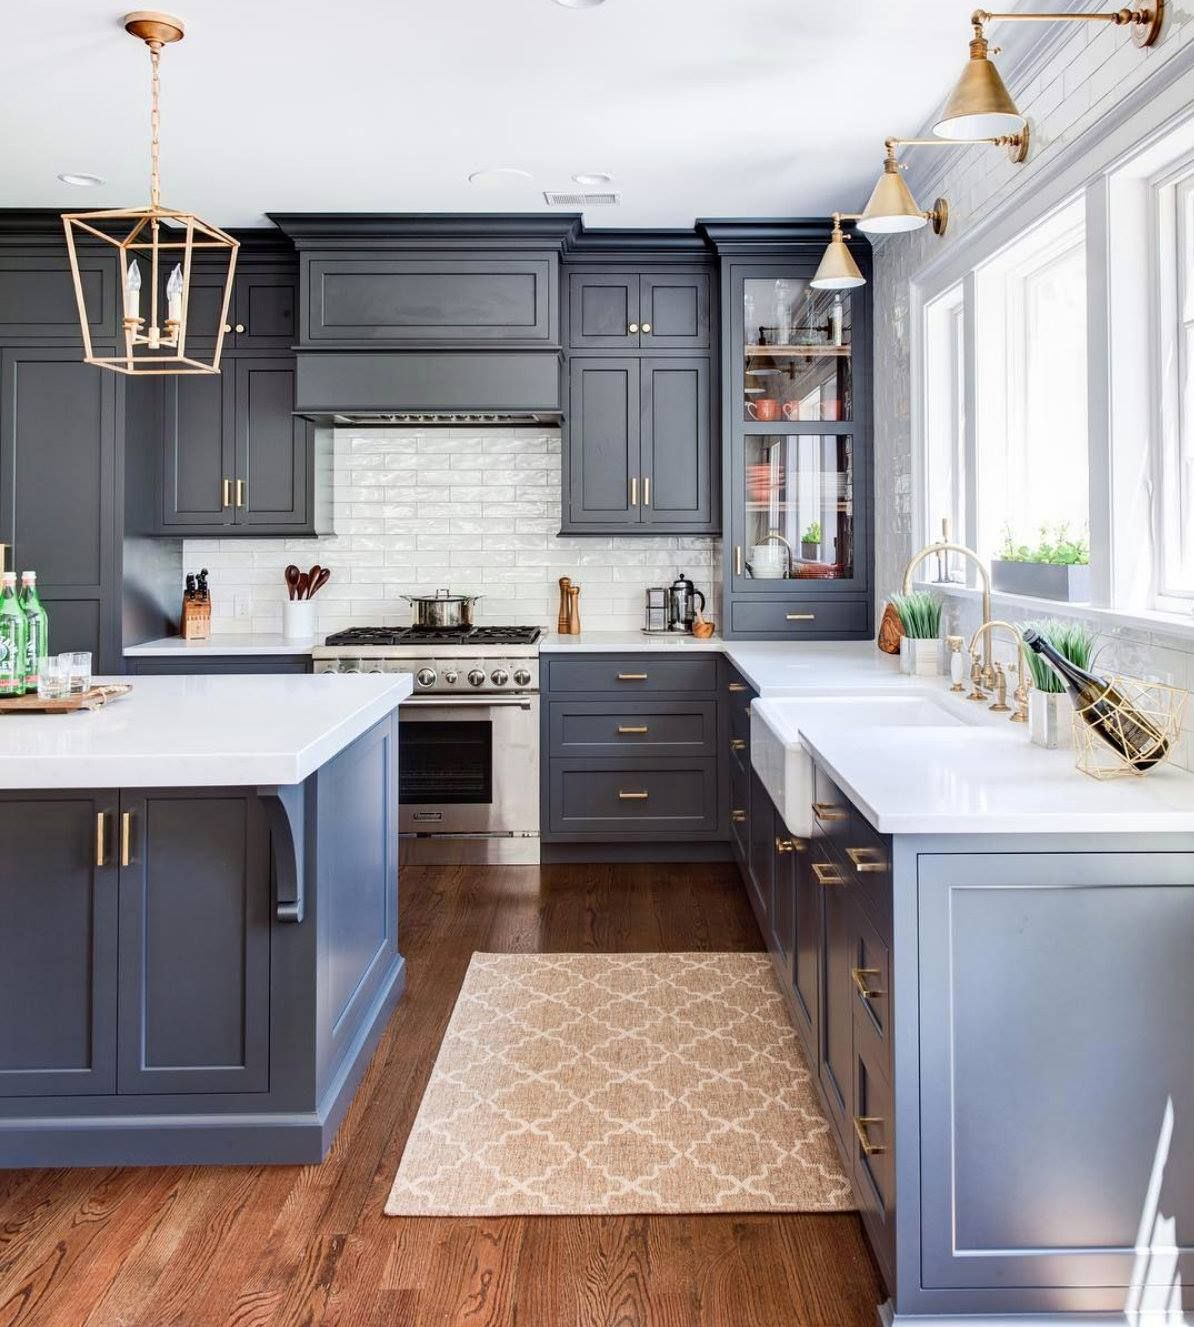 Benjamin Moore Colors For Kitchen: Cabinet Color: Benjamin Moore Wrought Iron